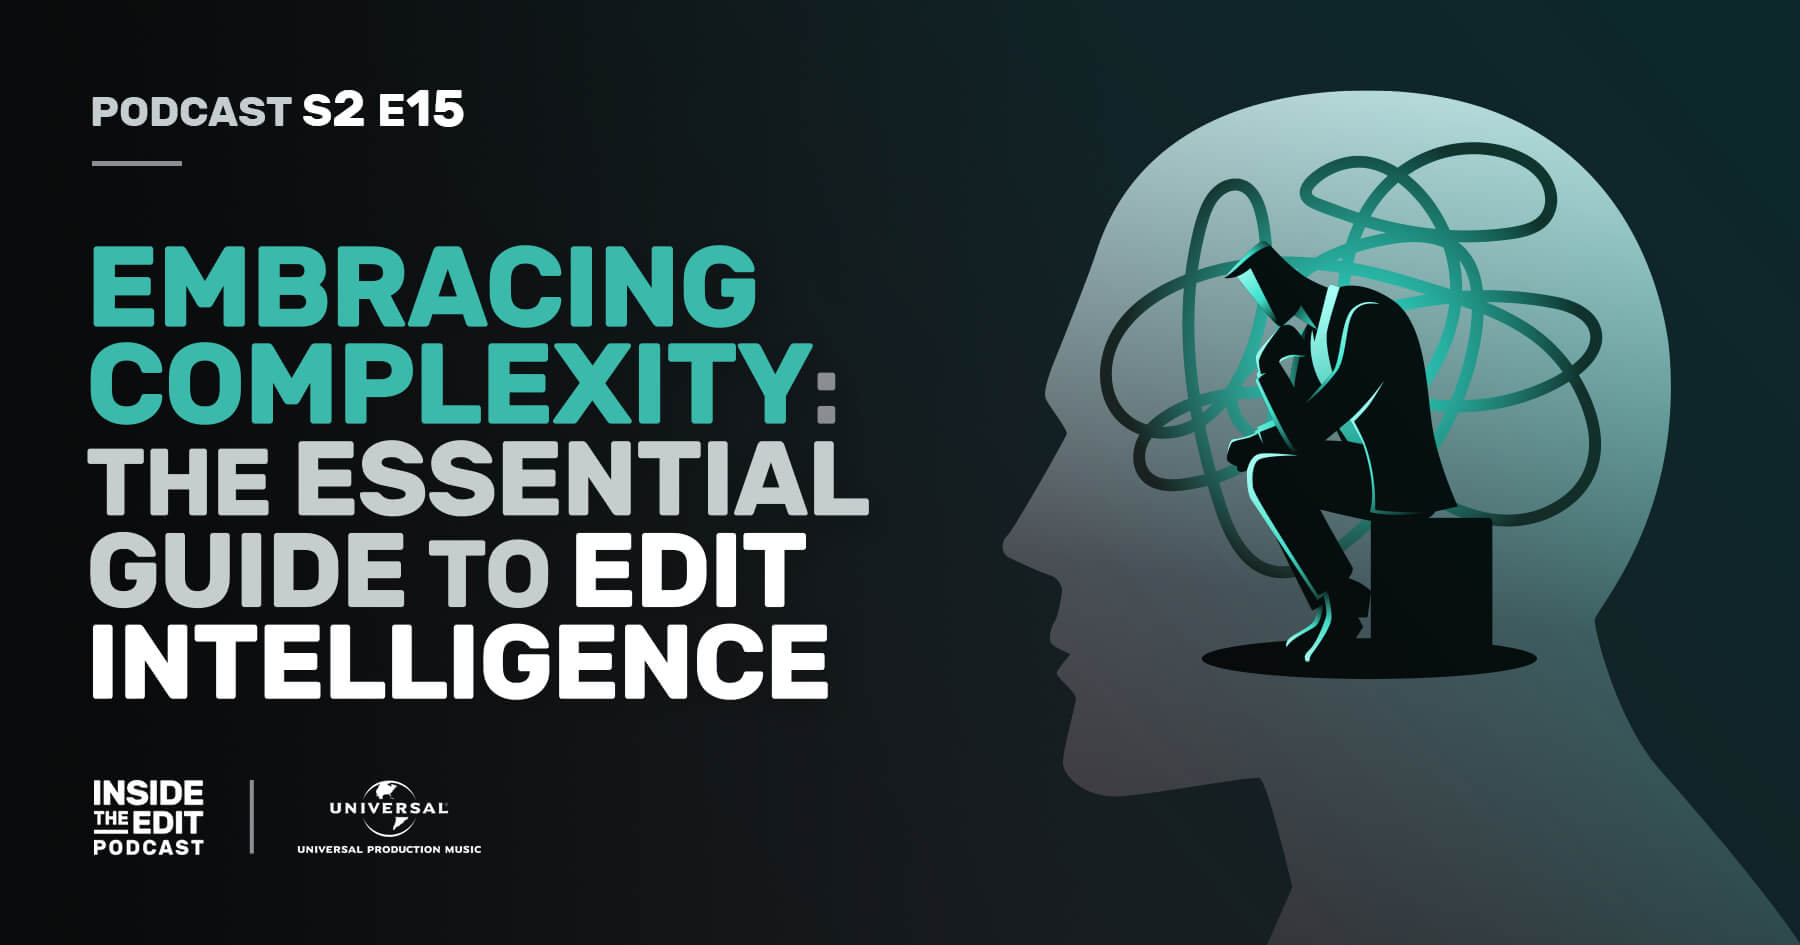 Embracing Complexity: The Essential Guide to Edit Intelligence